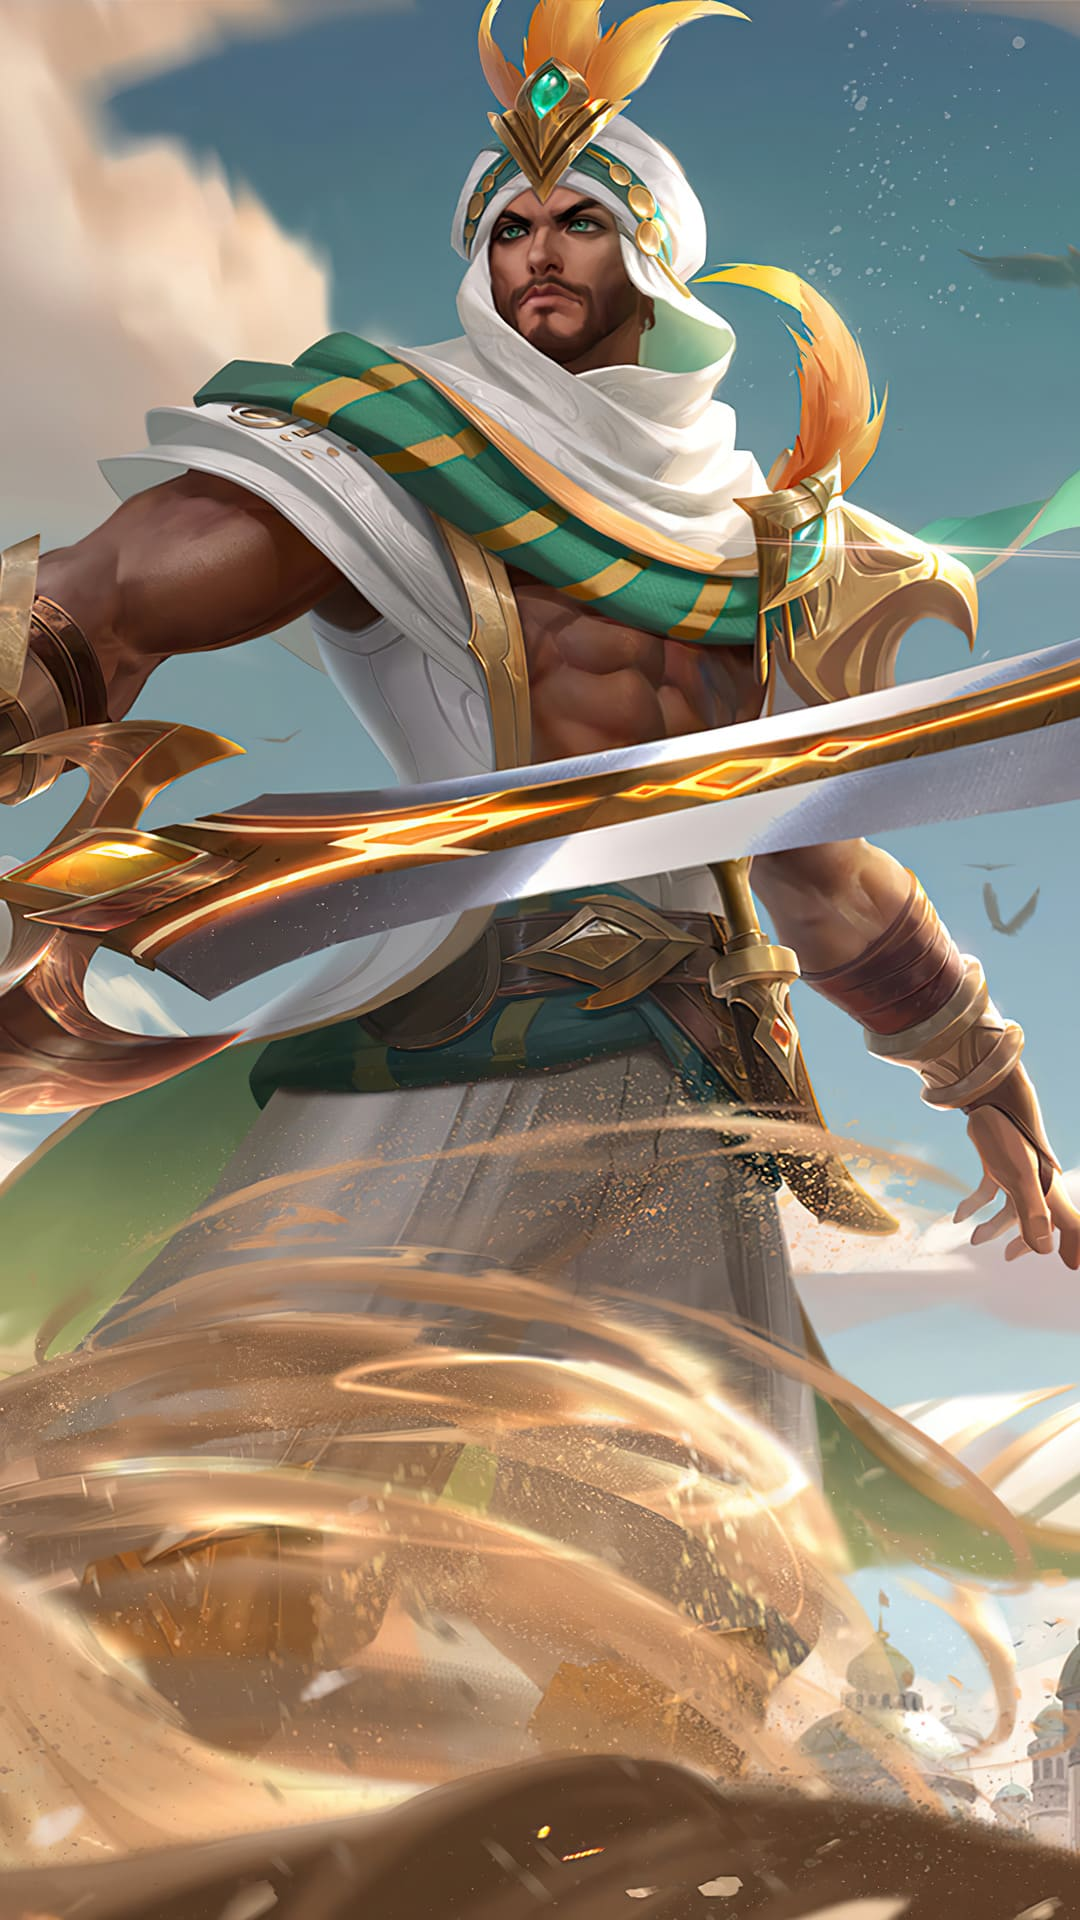 Gambar Khaleed mobile legends hd for mobile